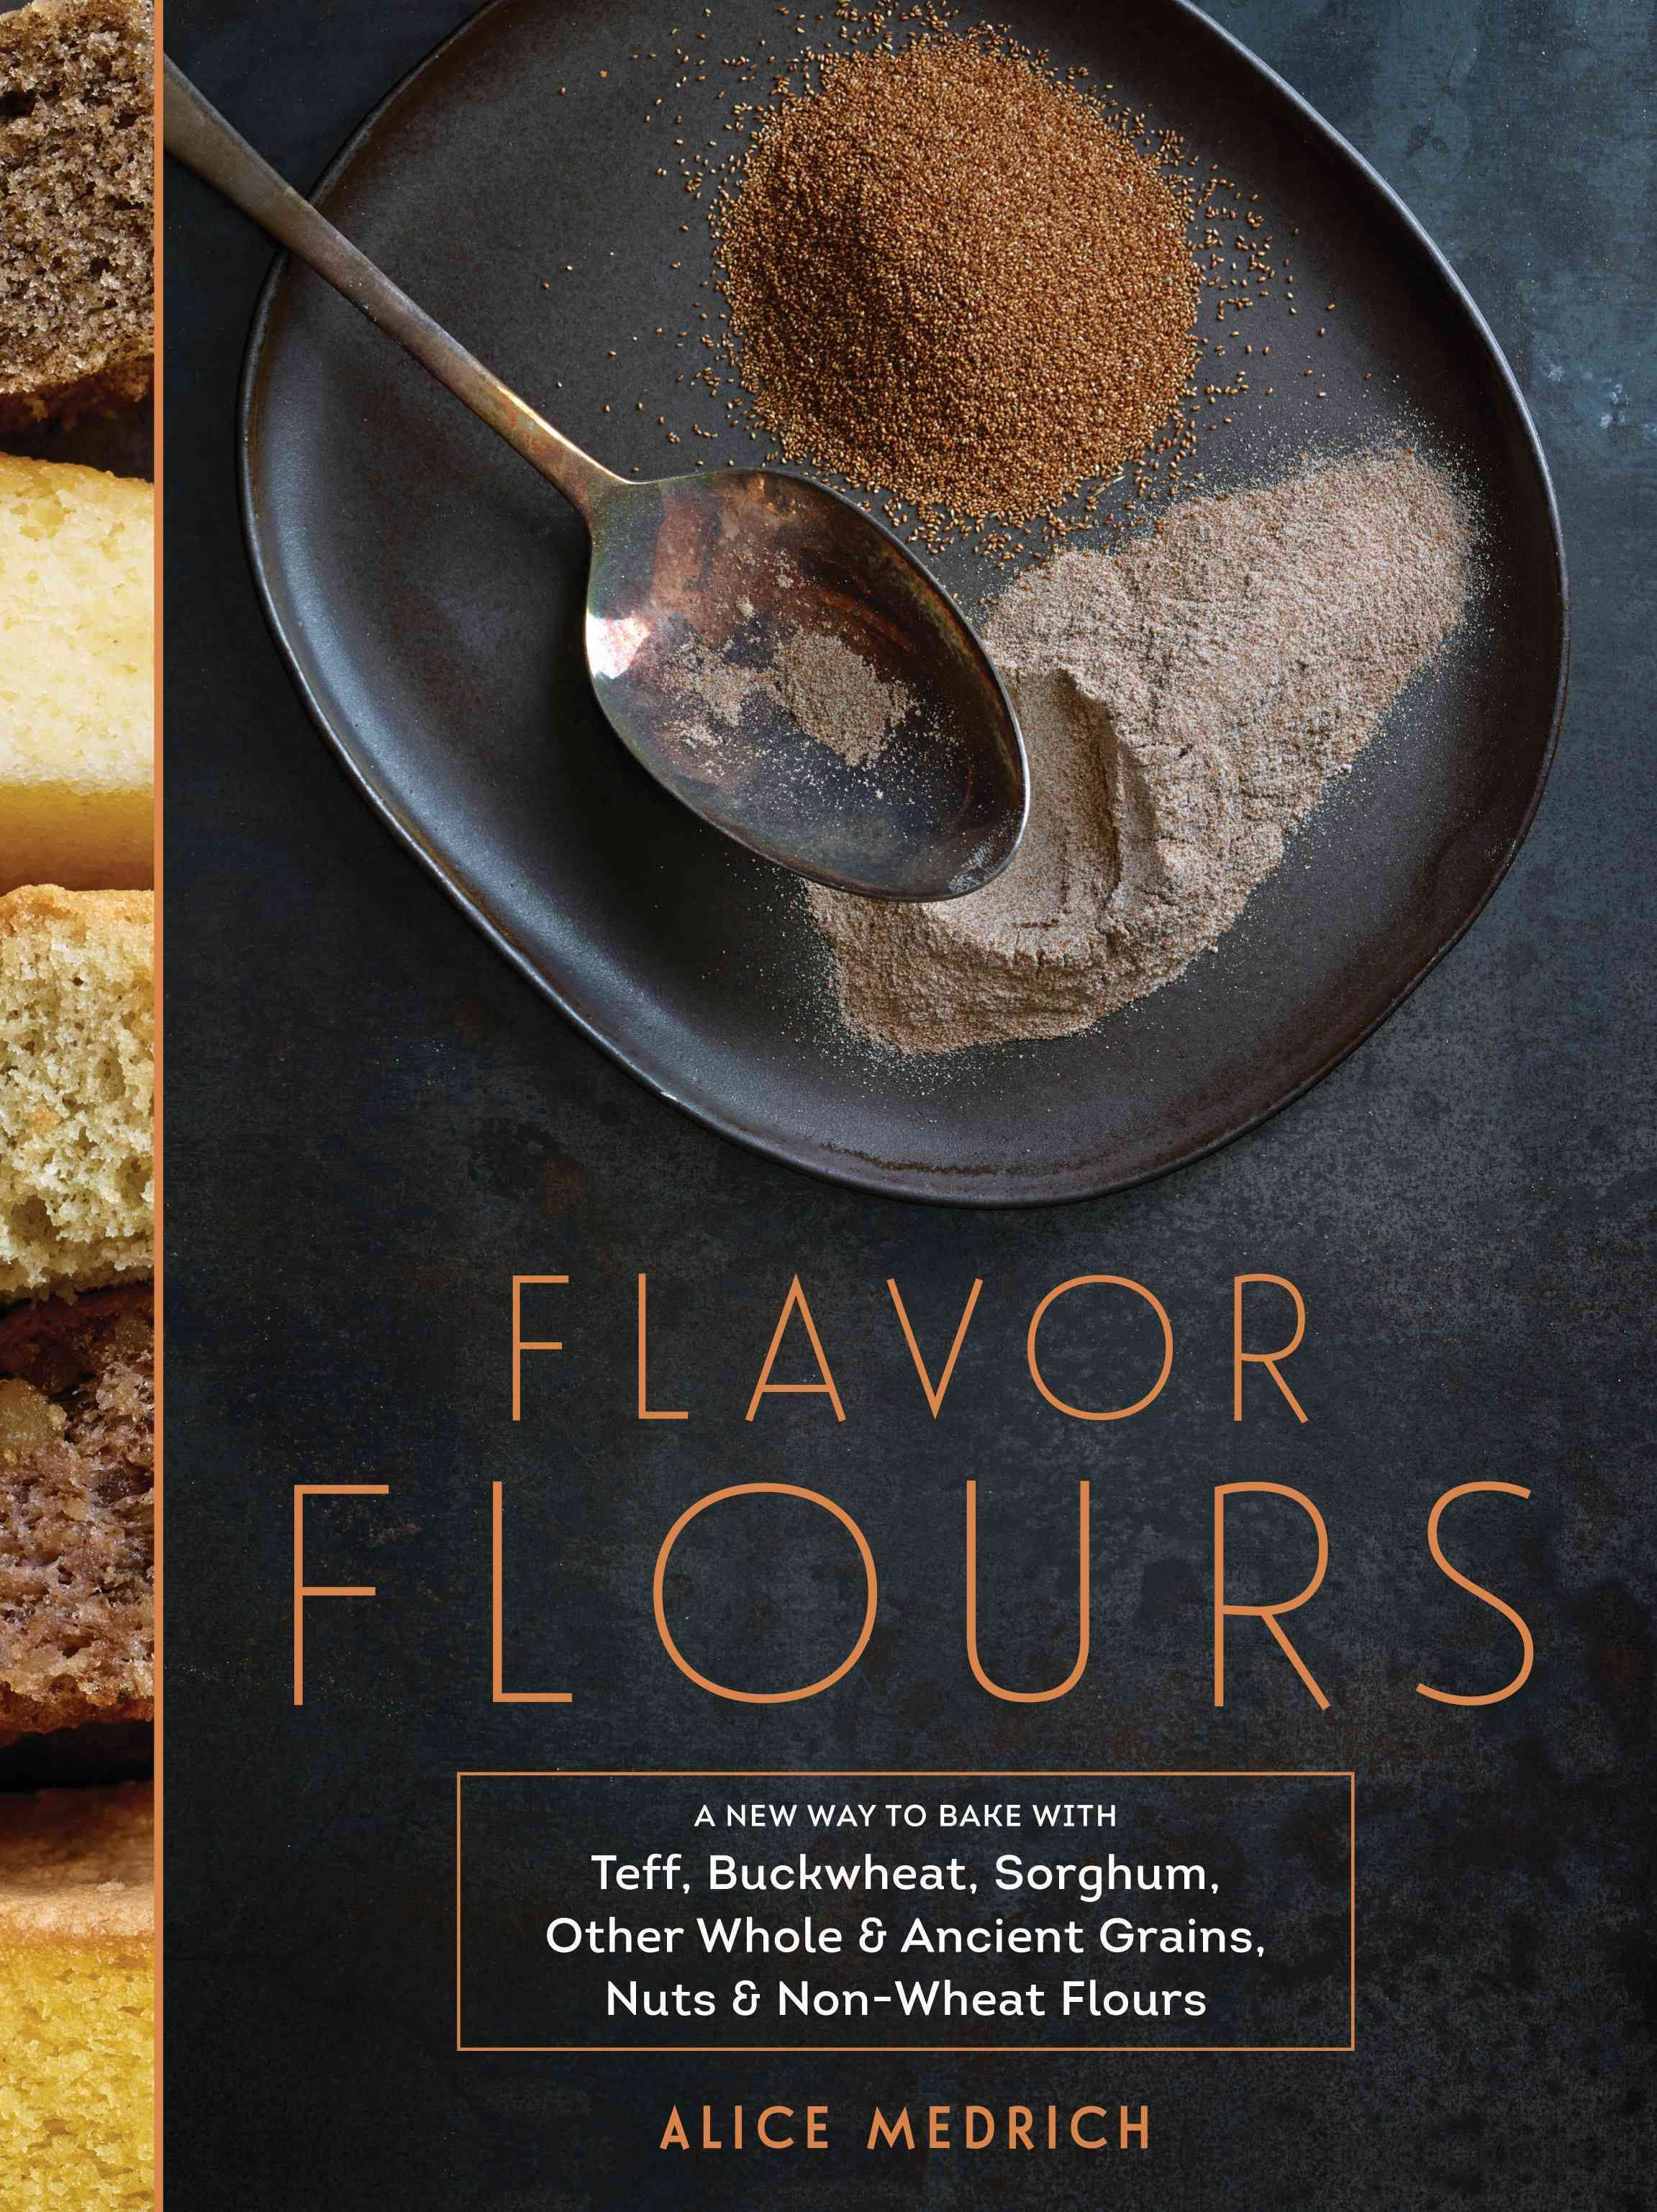 Flavor Flours: A New Way to Bake With Teff, Buckwheat, Sorghum, Other Whole & Ancient Grains, Nuts & Non-wheat Fl...